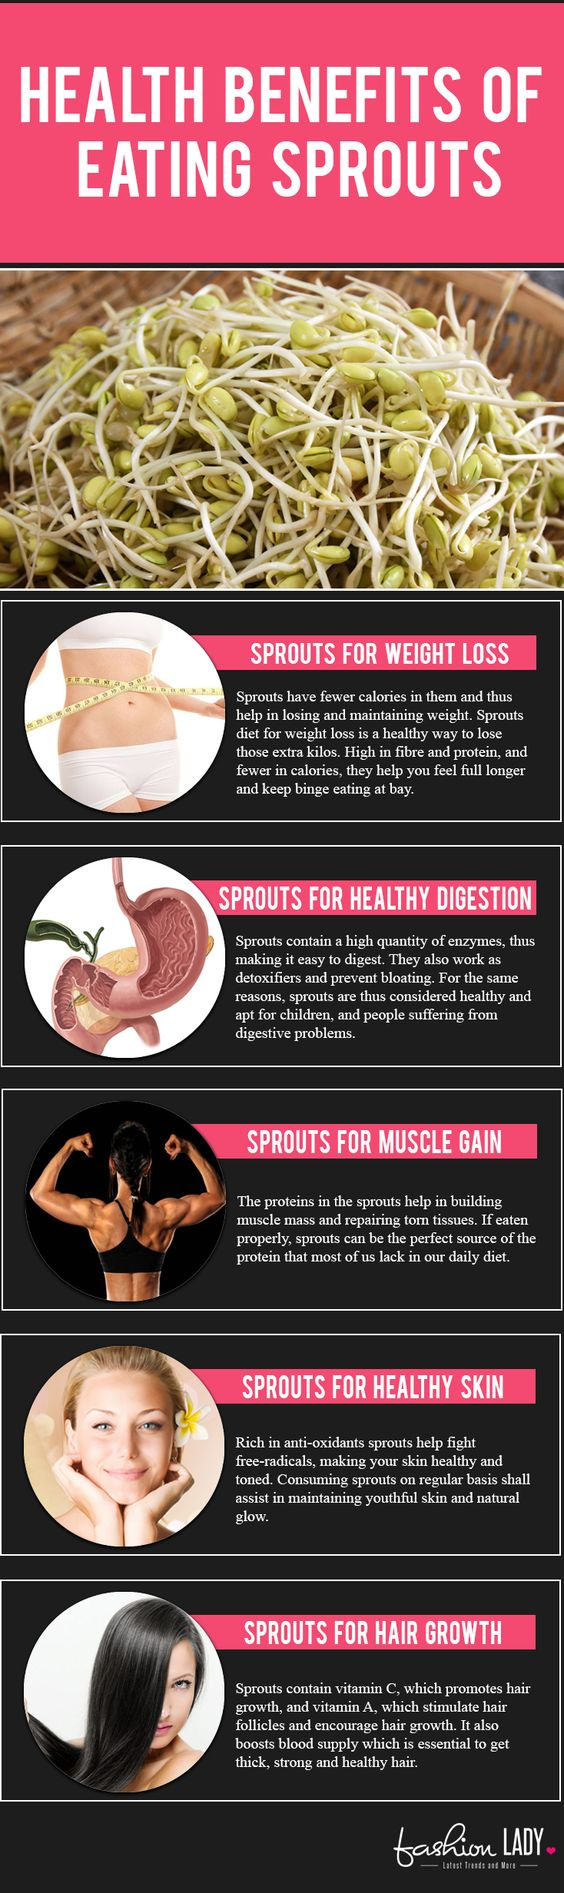 How to reduce fat in liver picture 3